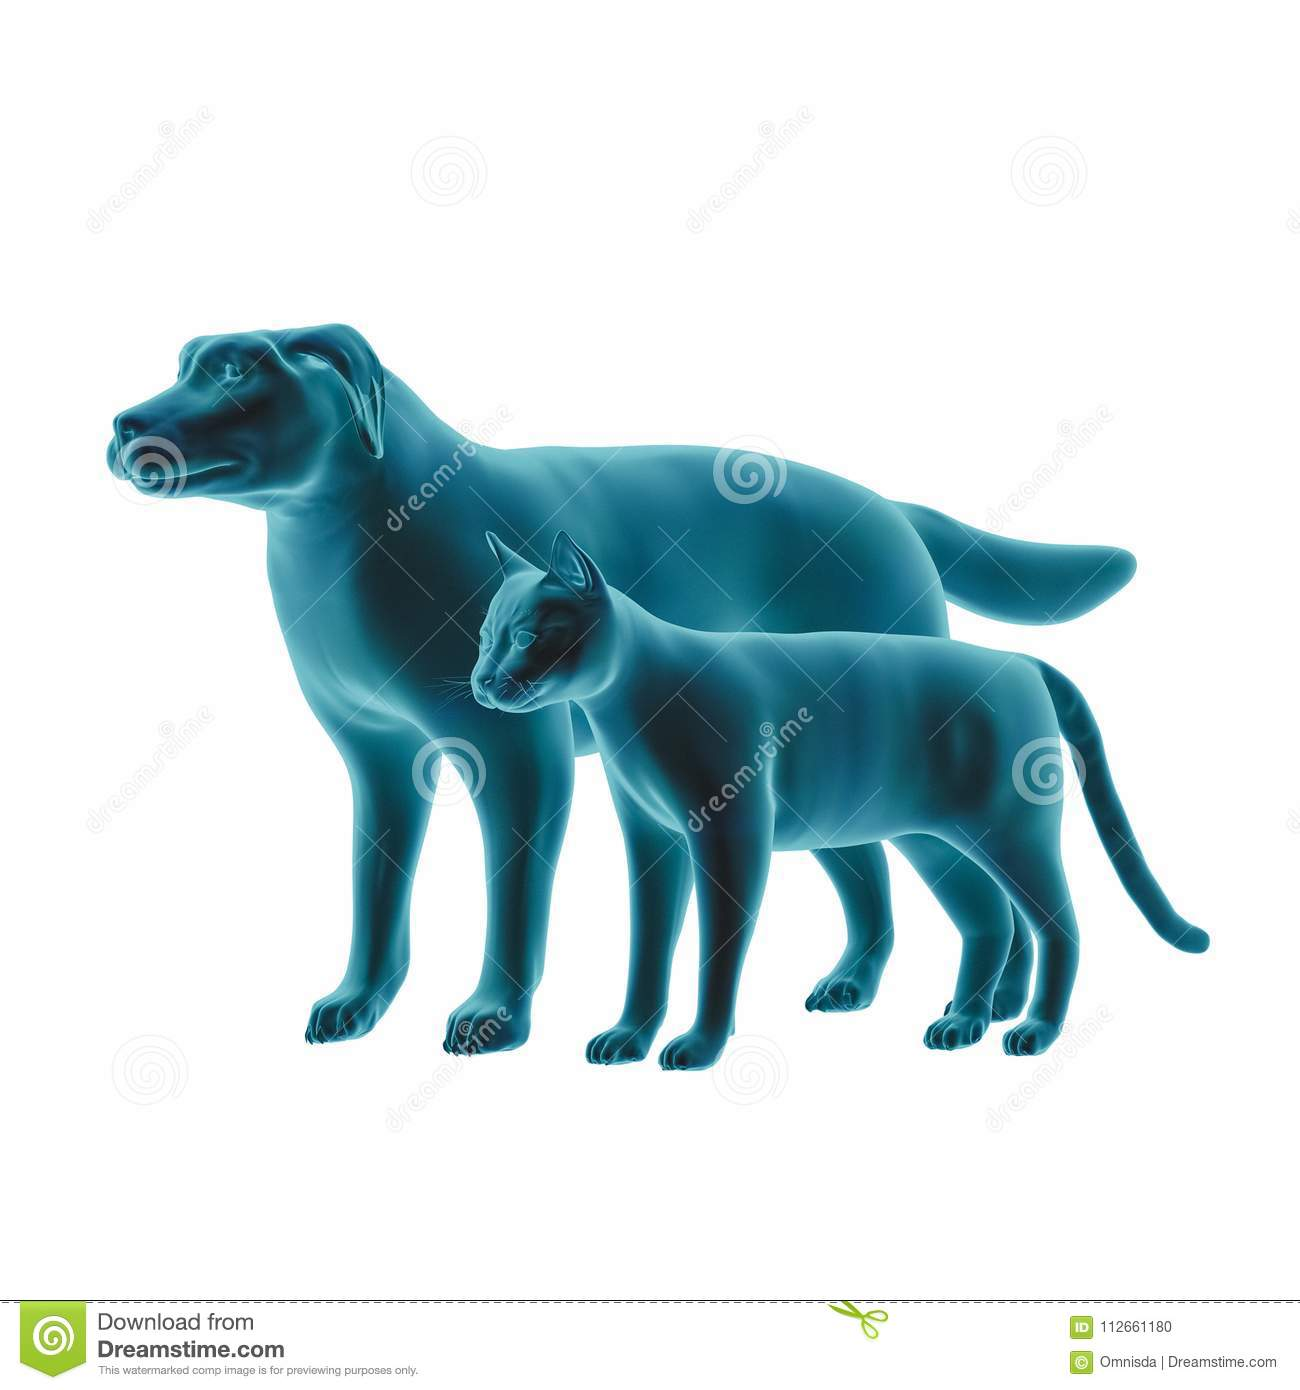 Pseudo X Ray Effect Of A 3d Rendered Cat And Dog